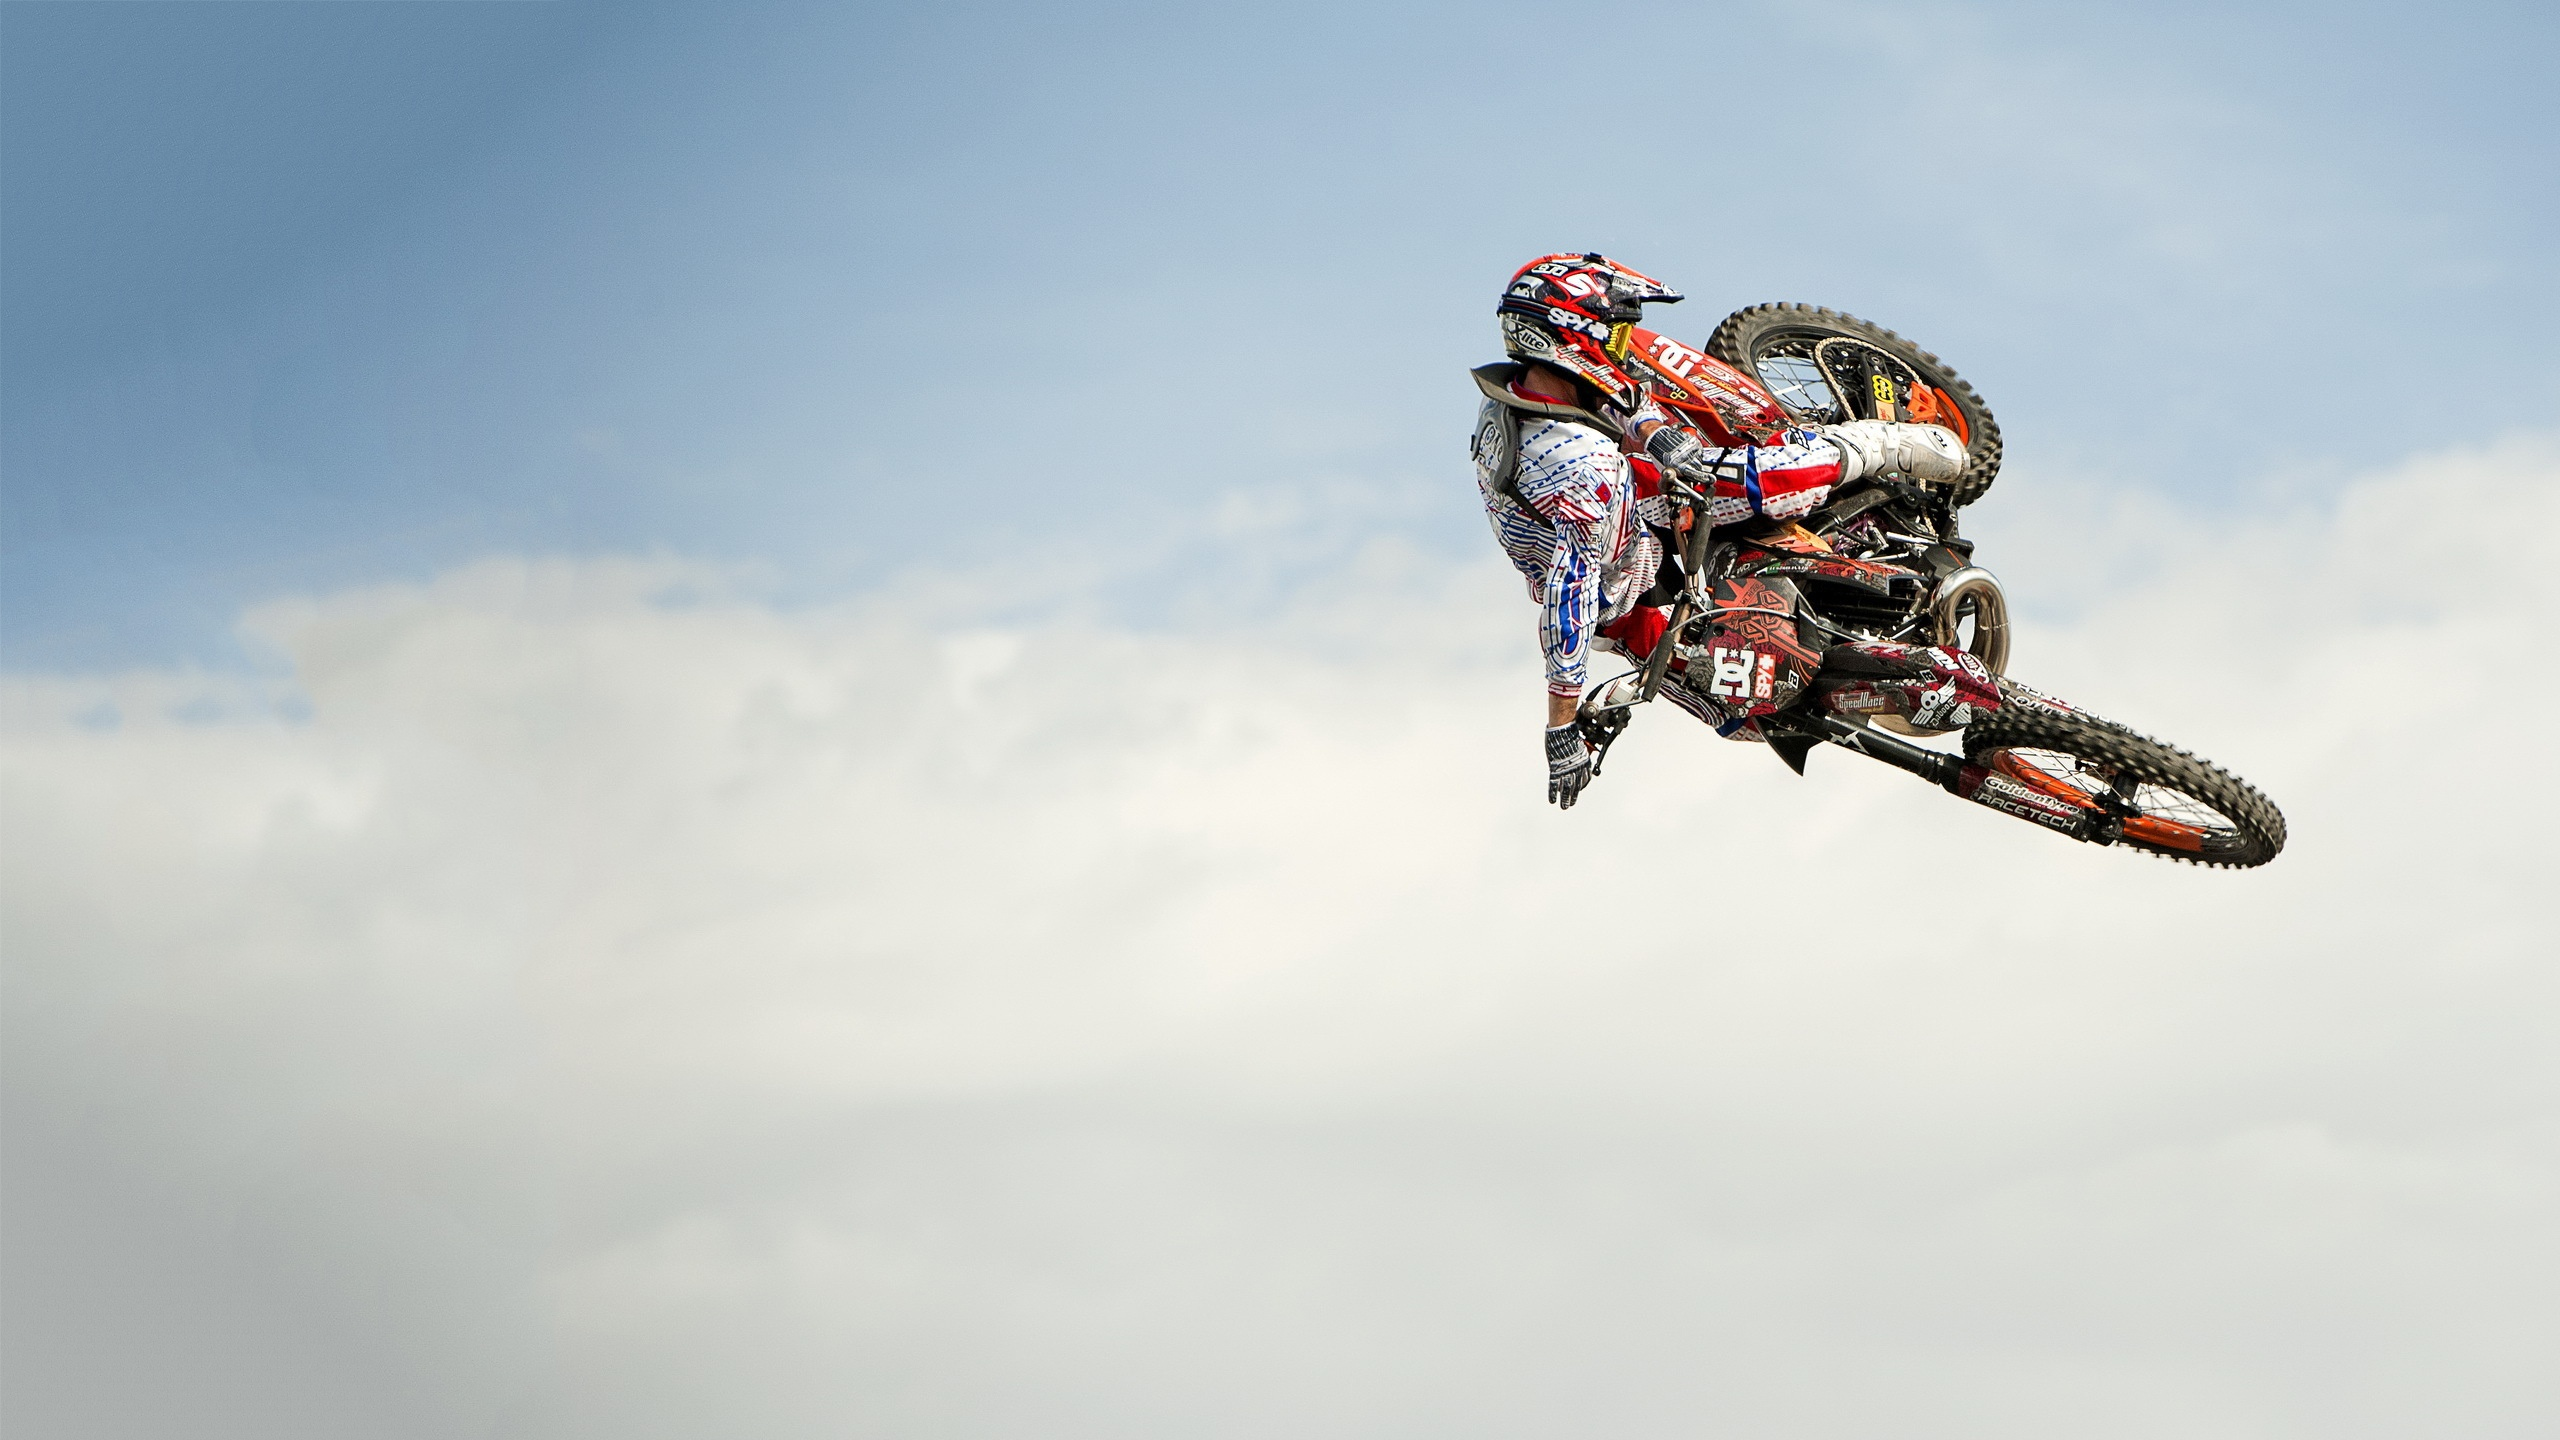 10 Awesome HD Motocross Wallpapers   HDWallSourcecom 2560x1440